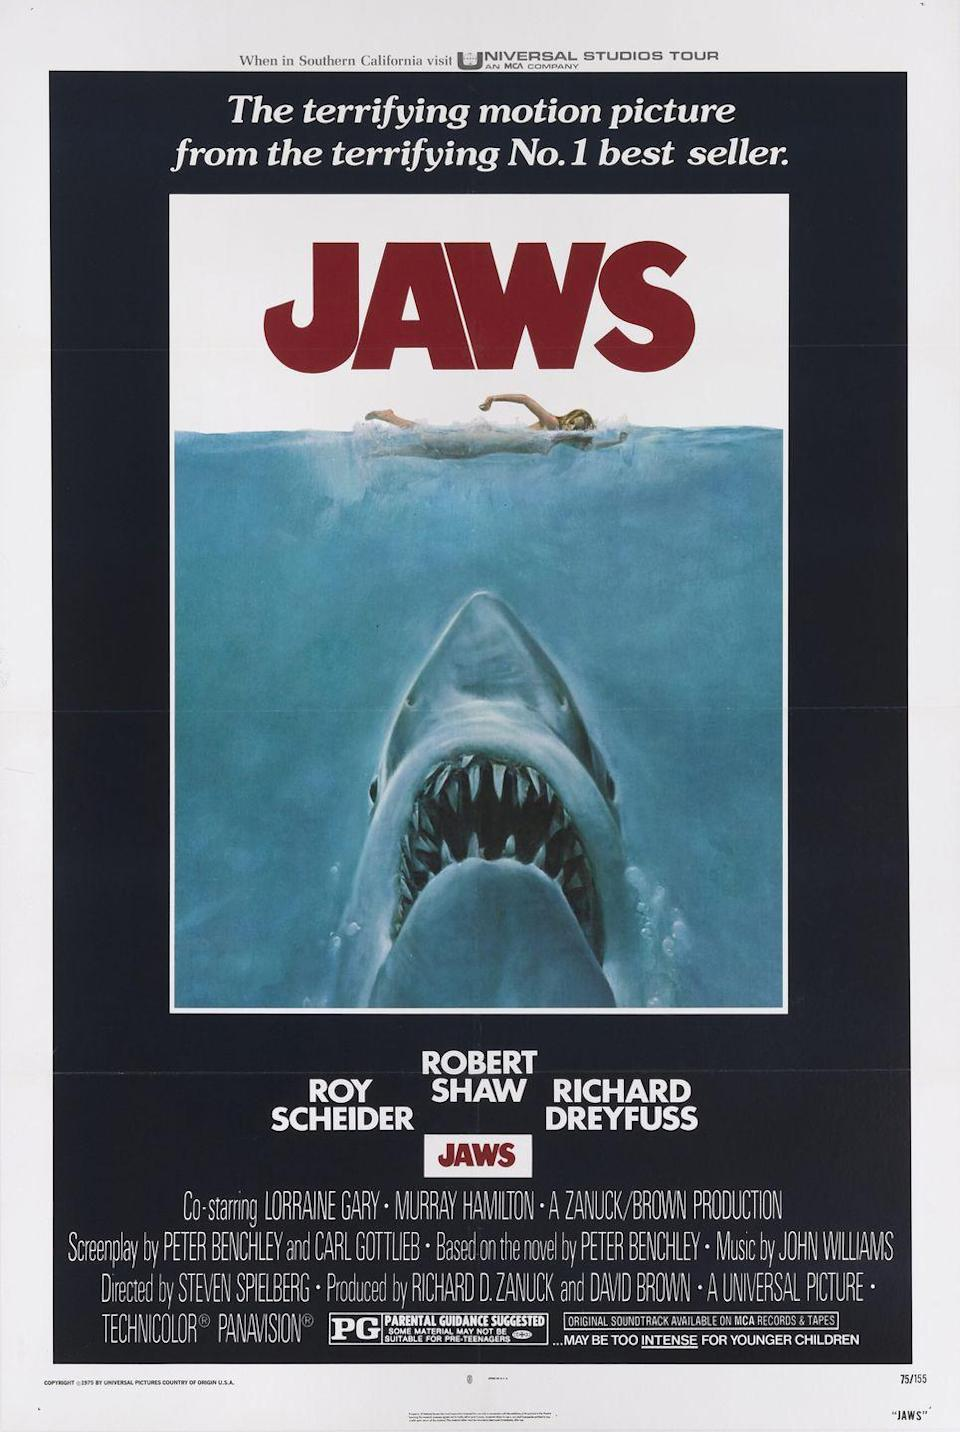 "<p>I challenge you to think of a horror movie released since 1975 that uses music to inspire fear as effectively as <em>Jaws</em> does. When you hear that ""<a href=""https://www.youtube.com/watch?v=ZvCI-gNK_y4"" rel=""nofollow noopener"" target=""_blank"" data-ylk=""slk:dun-dun, dun-dun, dun-dun"" class=""link rapid-noclick-resp"">dun-dun, dun-dun, dun-dun</a>"" sound (you know what I'm talking about), you know shit's about to get bloody.</p>"